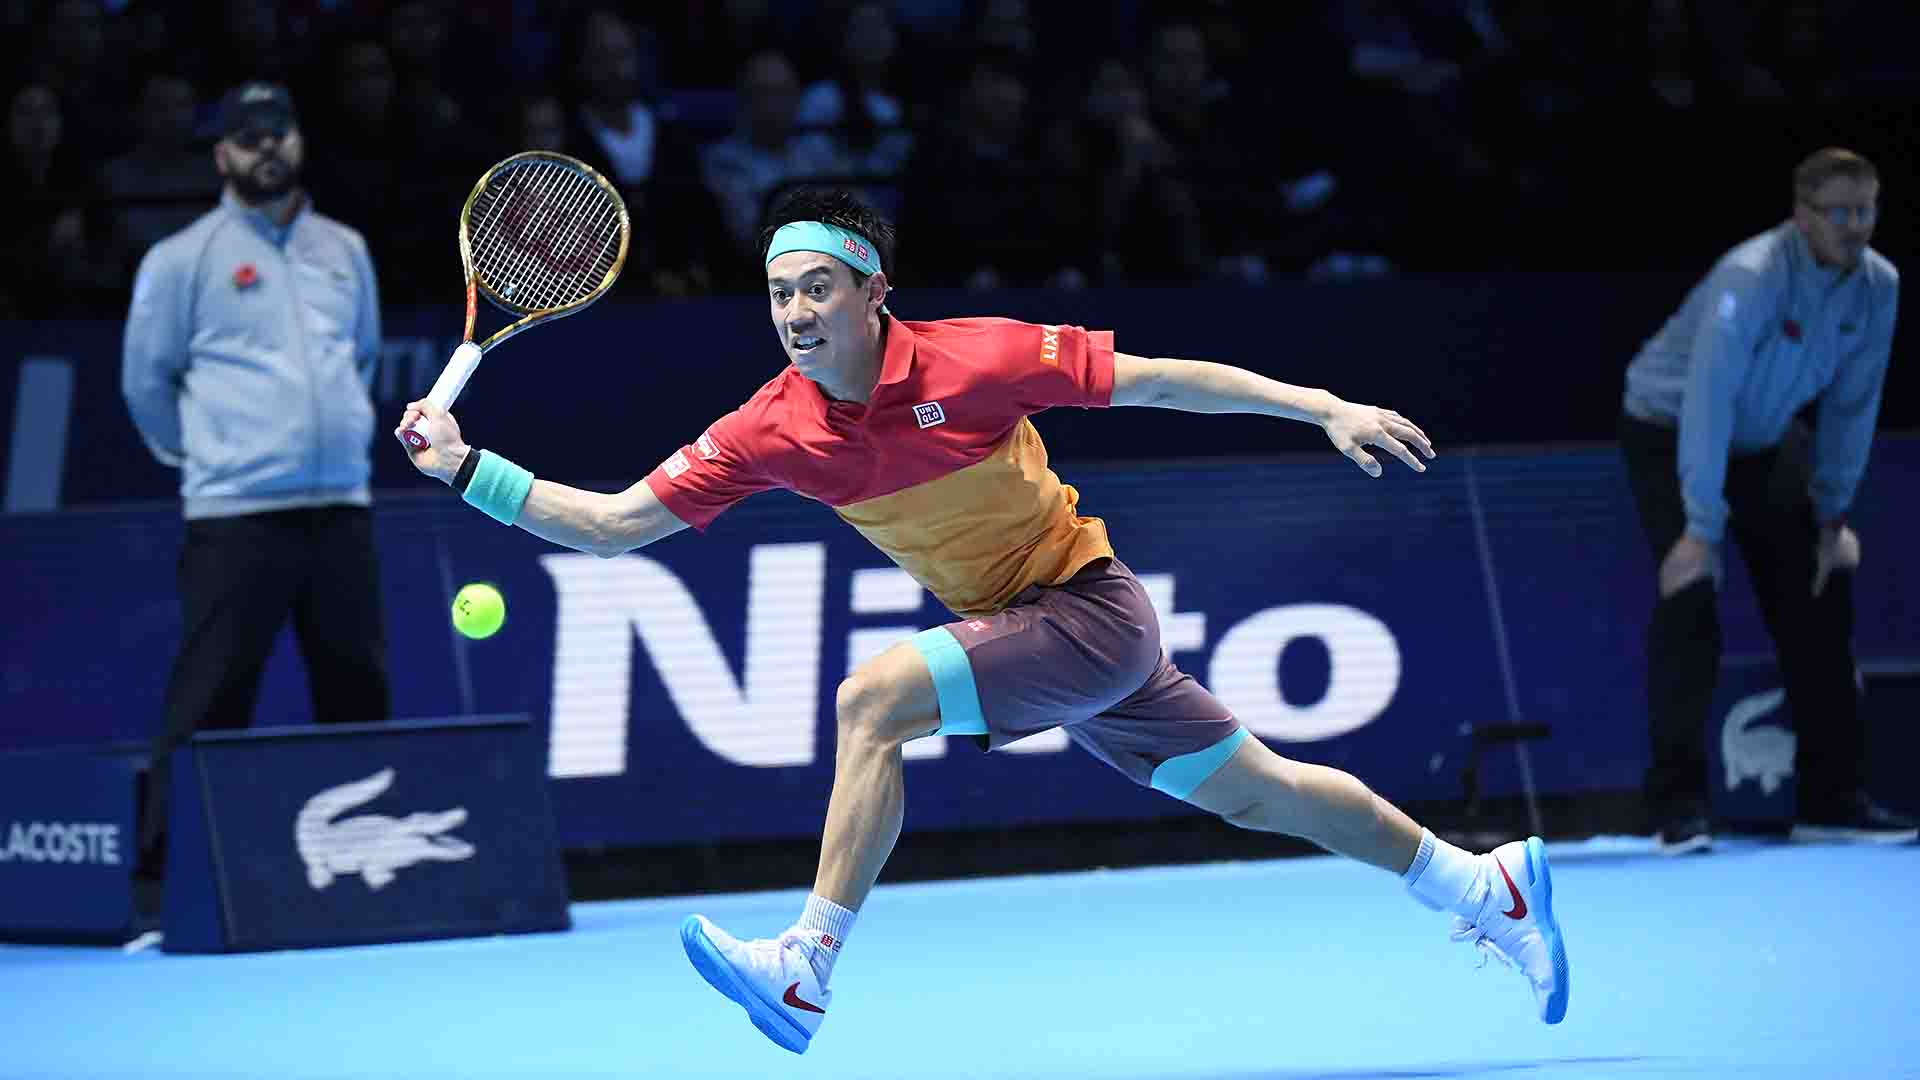 08 Nishikori Nitto ATP Finals 2018 Sunday Defend